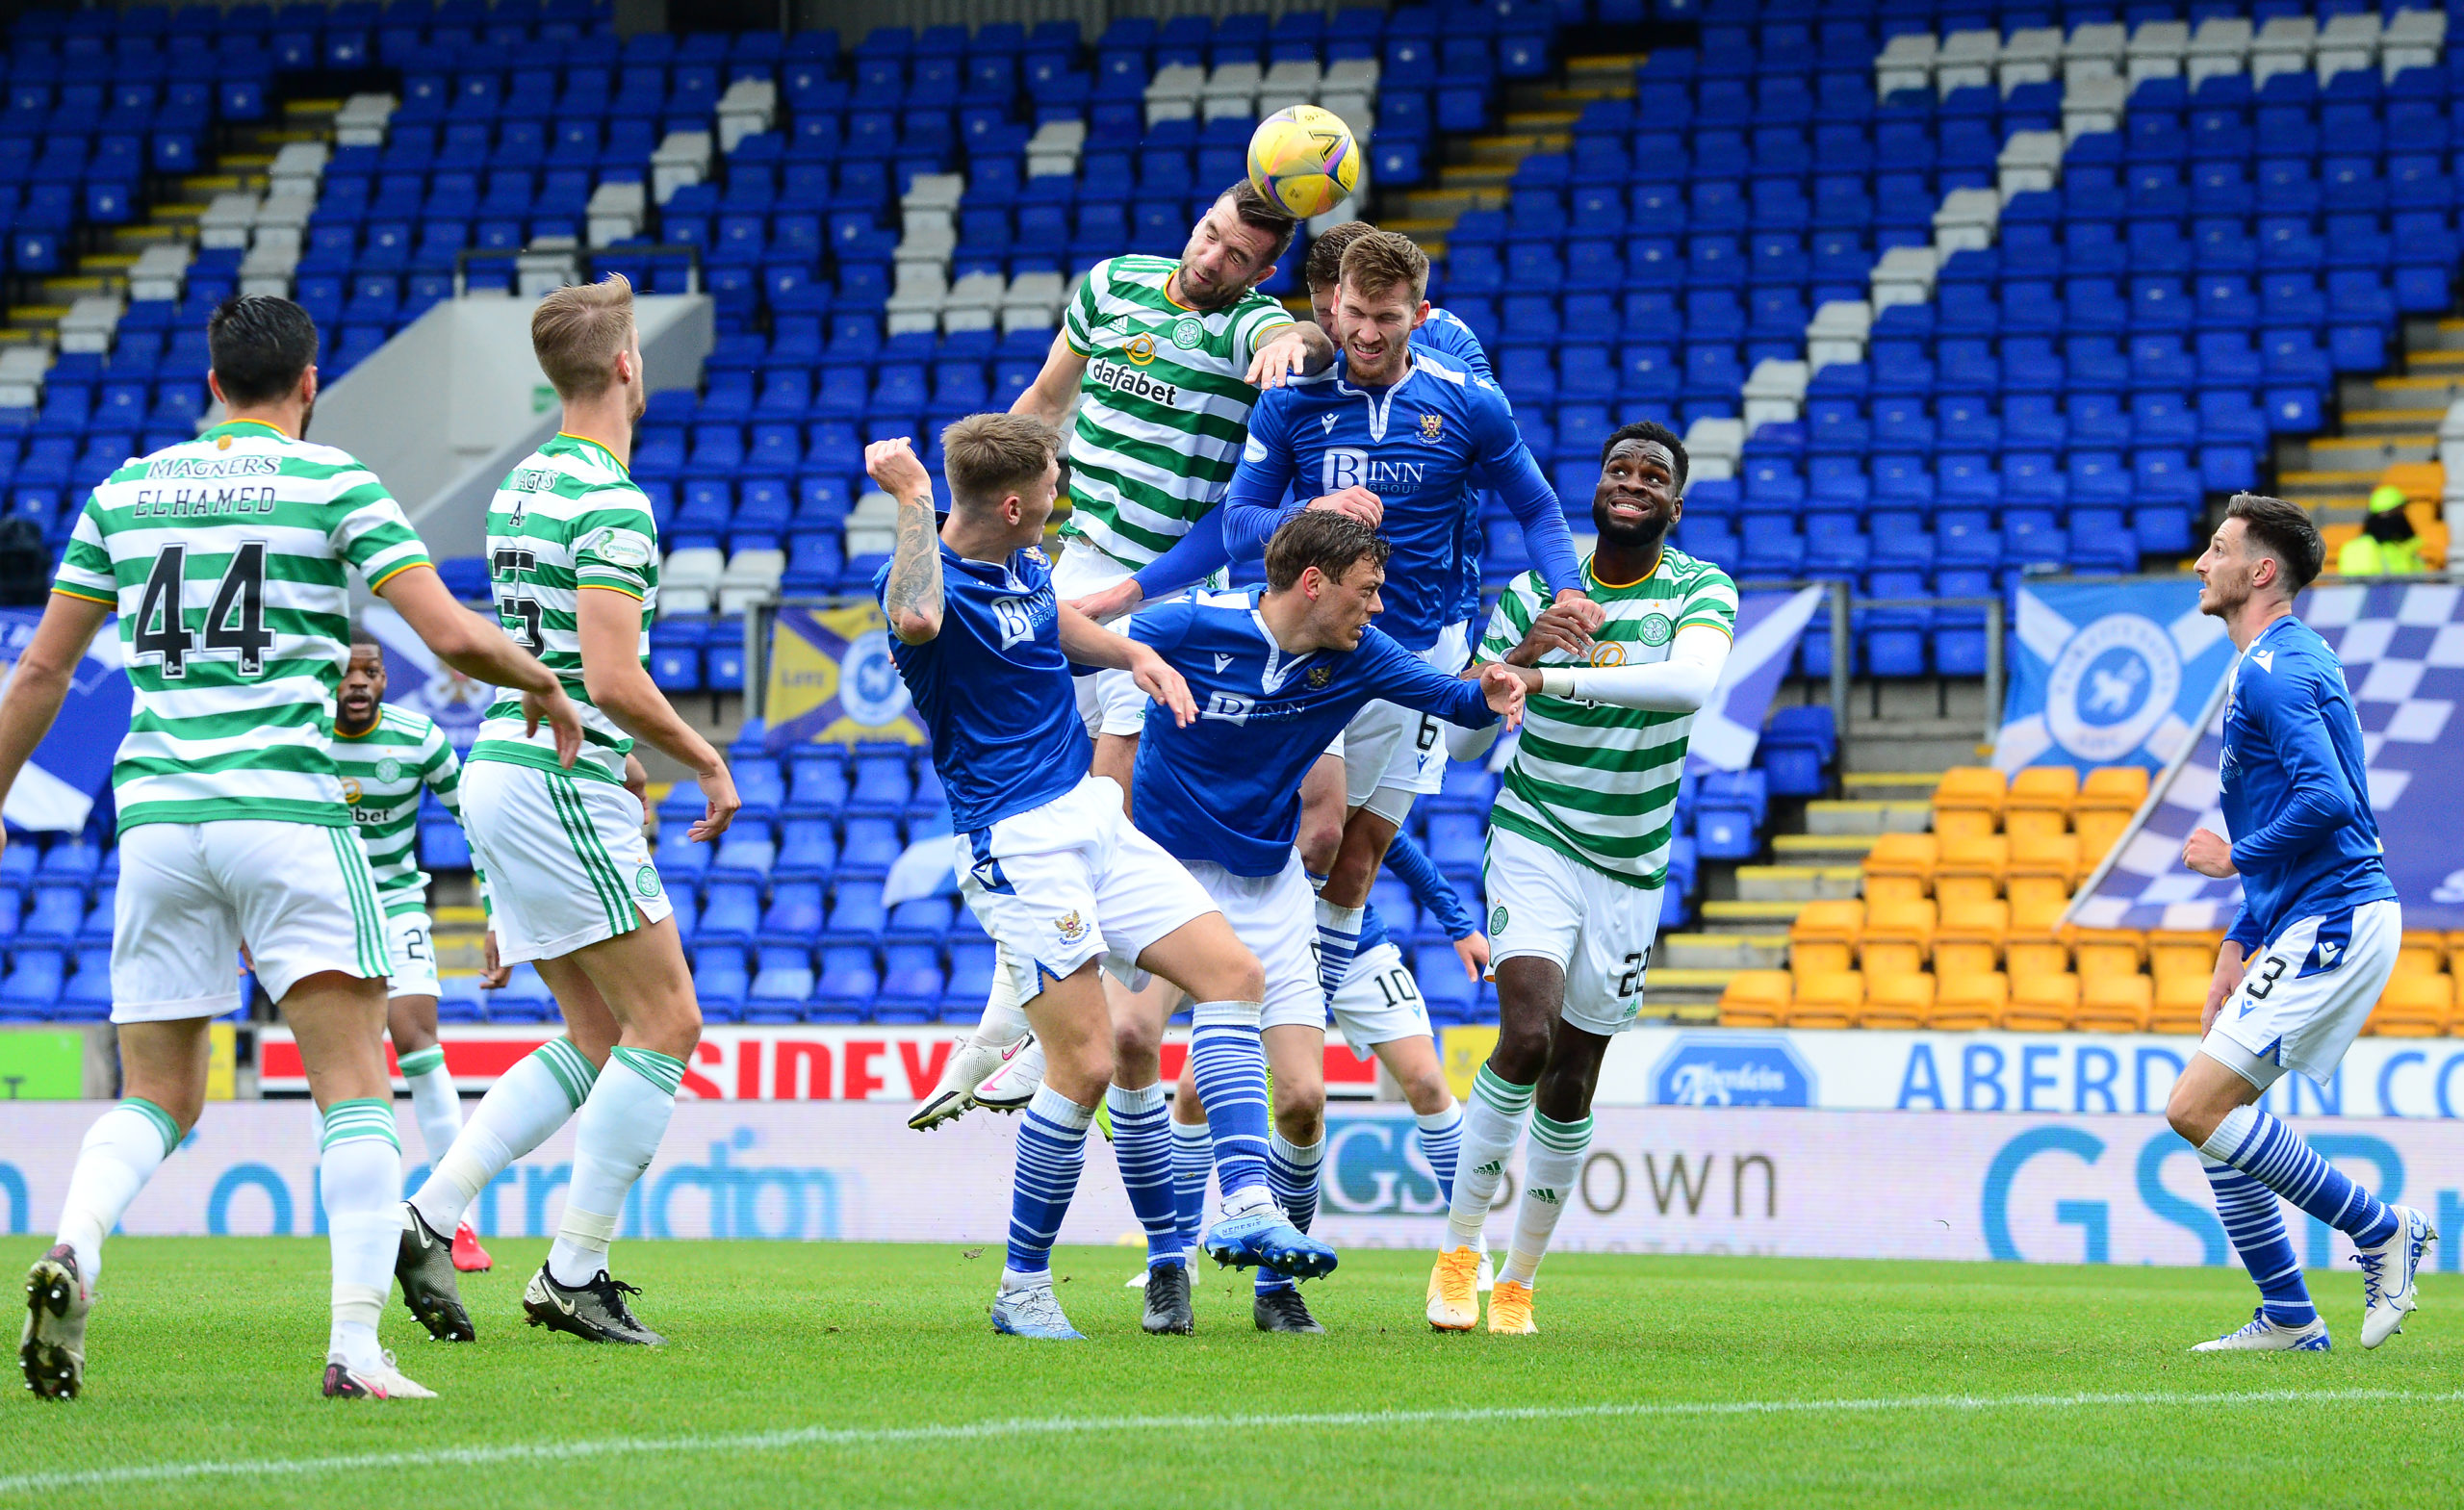 Celtic have toiled badly in some domestic games